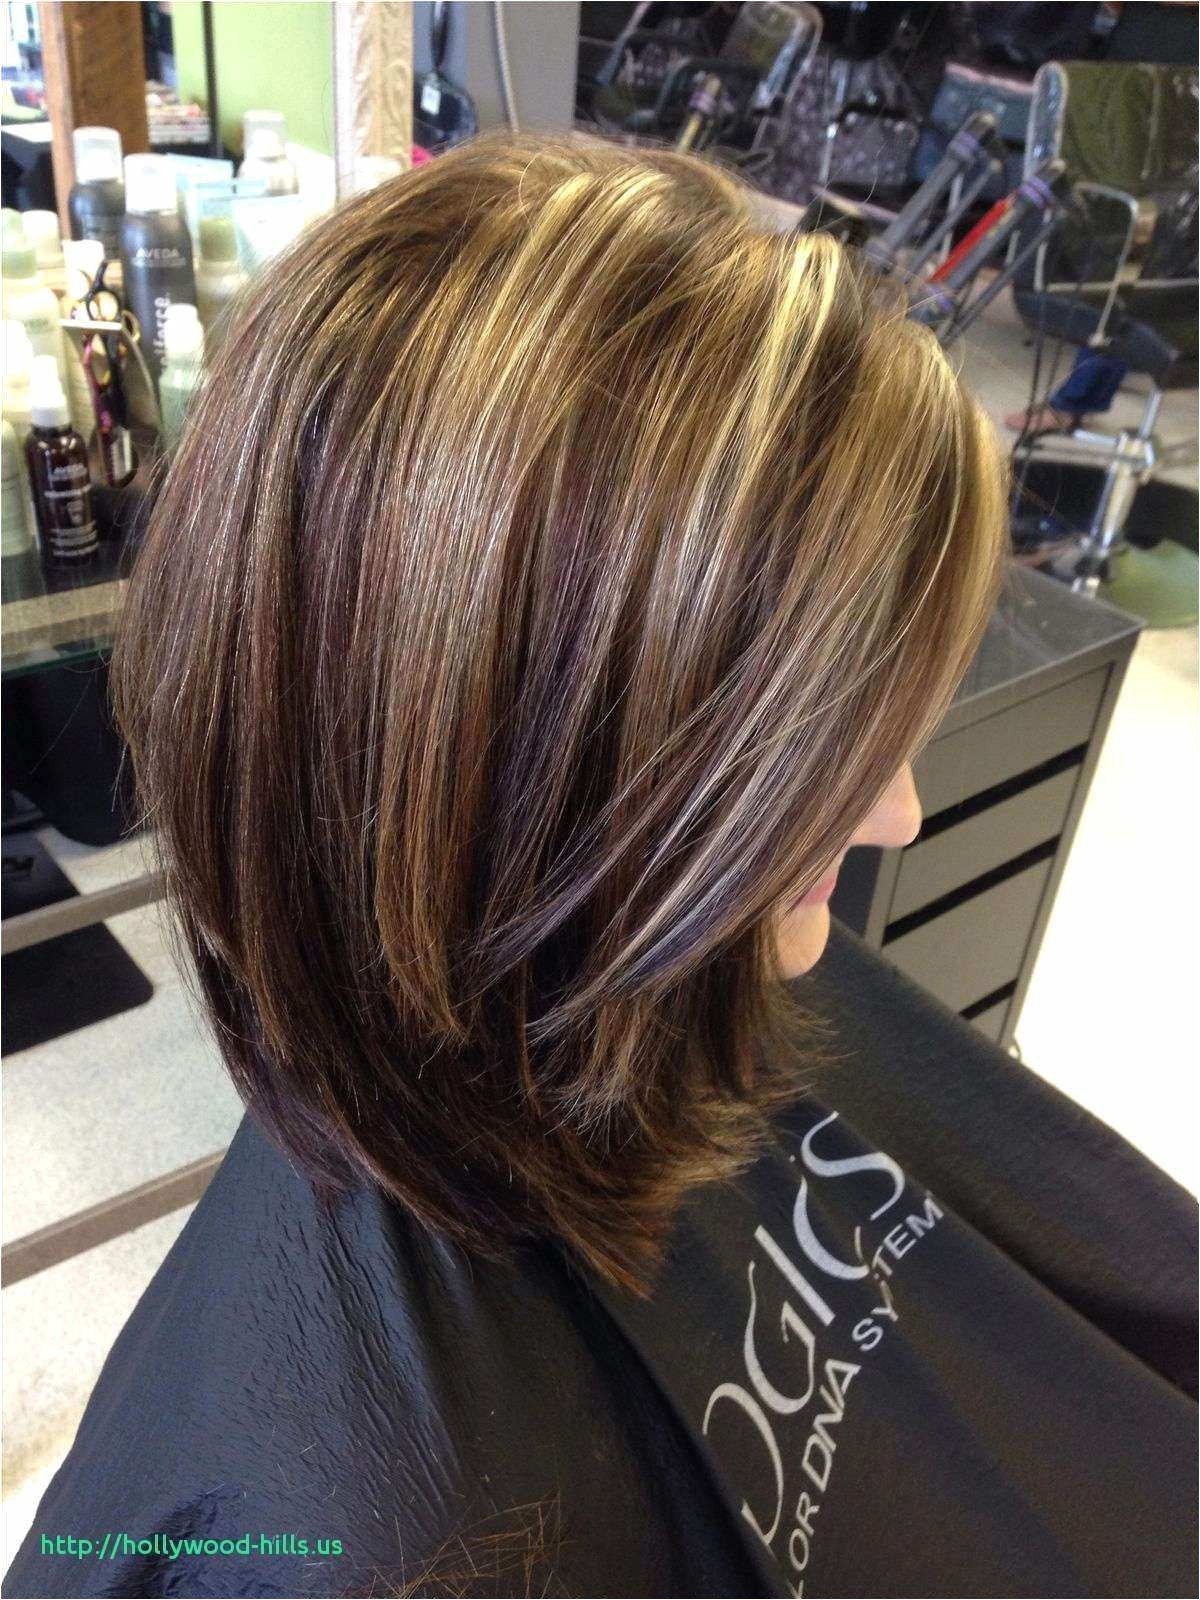 Hairstyle for Girls for School Luxury Lovely Beautiful Girl Hairstyles Dailymotion